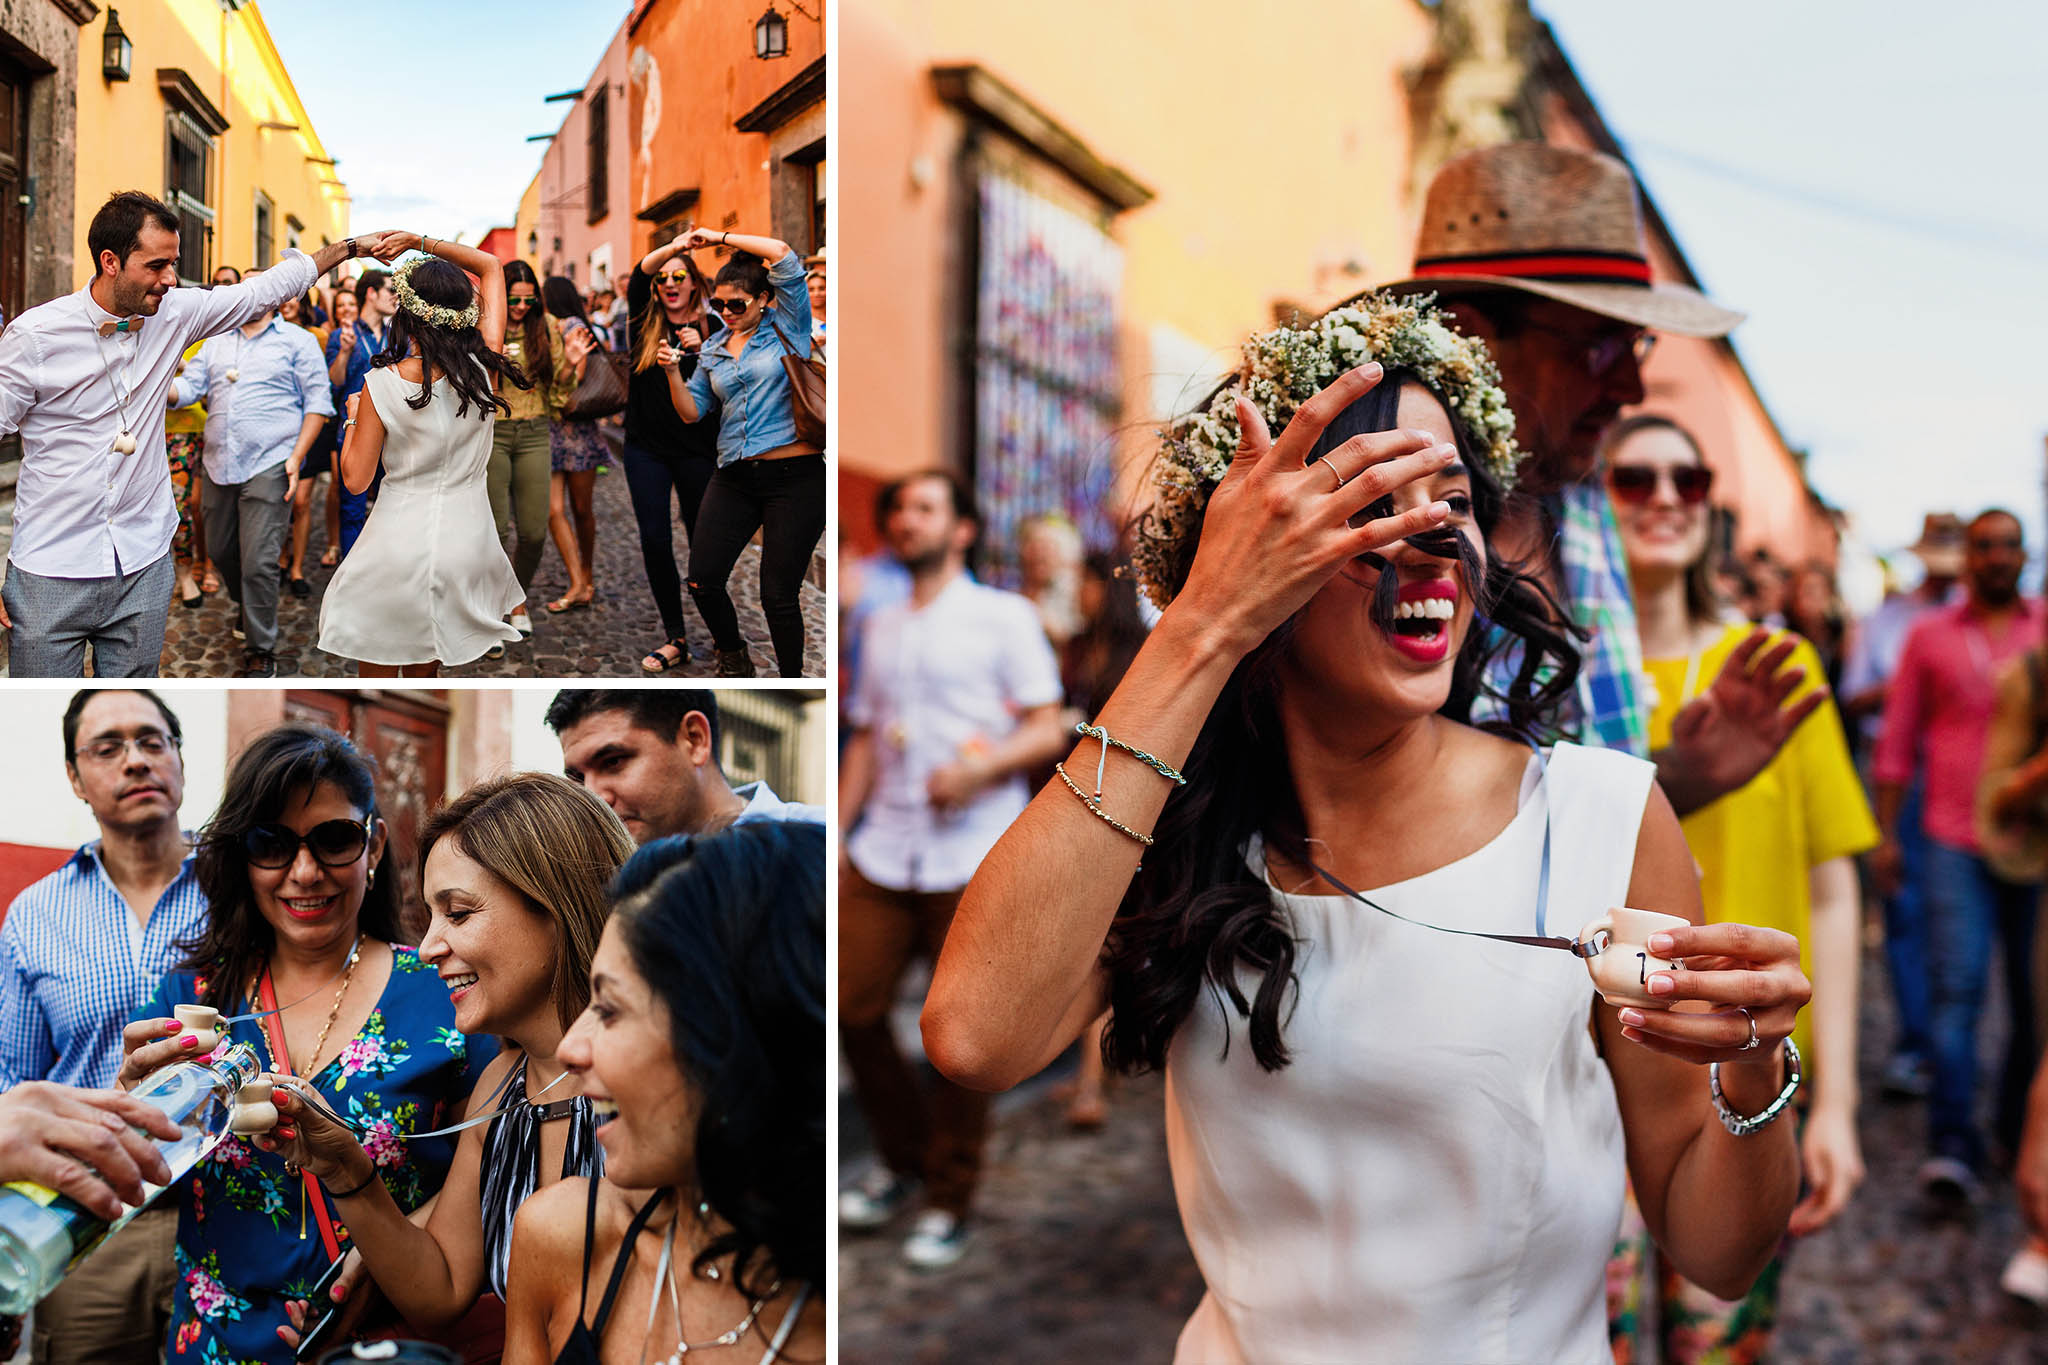 Wedding Parade in San Miguel de Allende